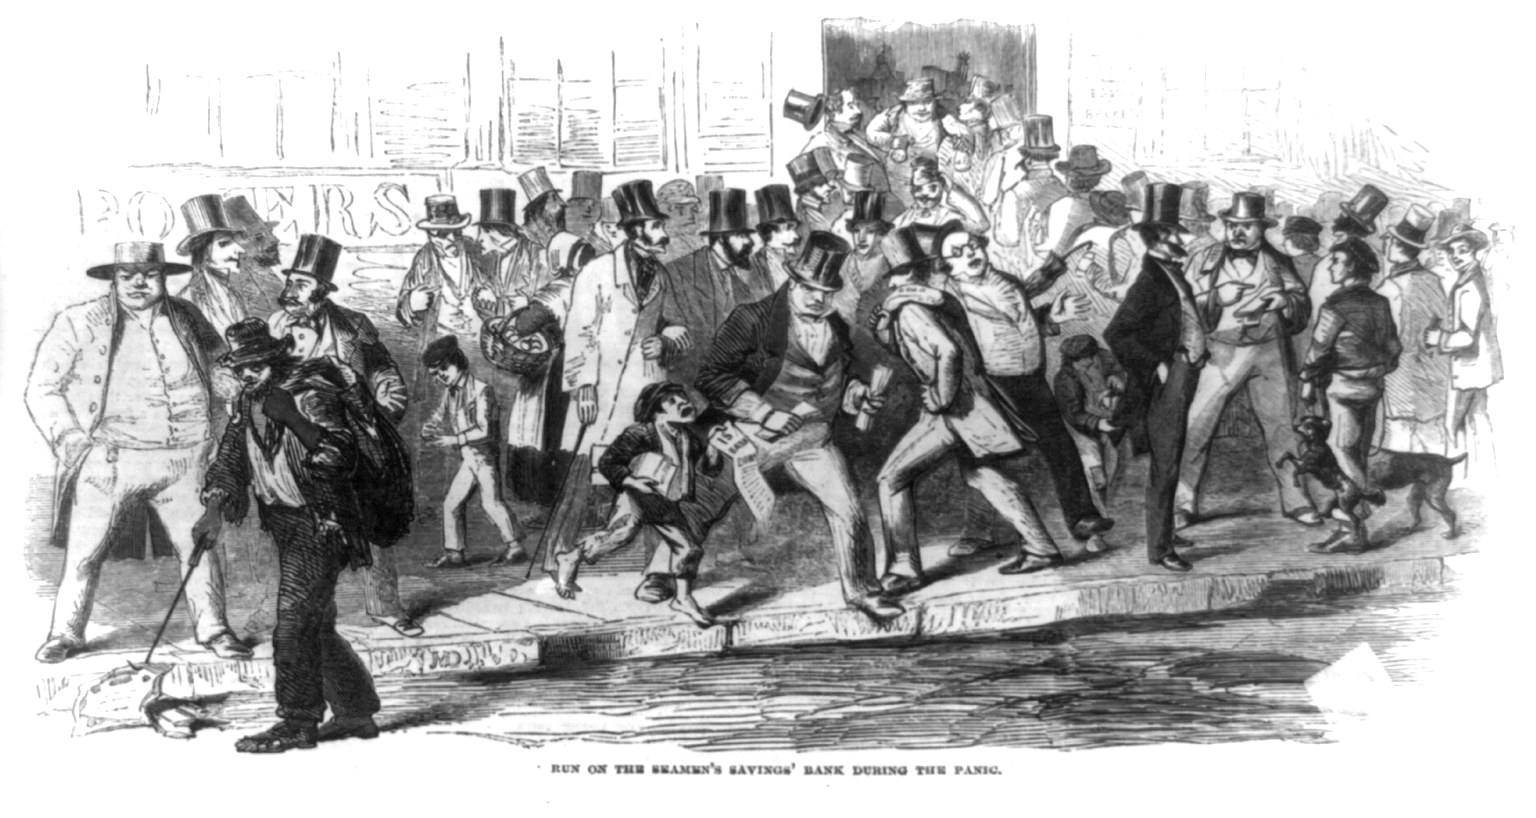 Run on the Seamen's Savings' Bank during the Panic of 1857